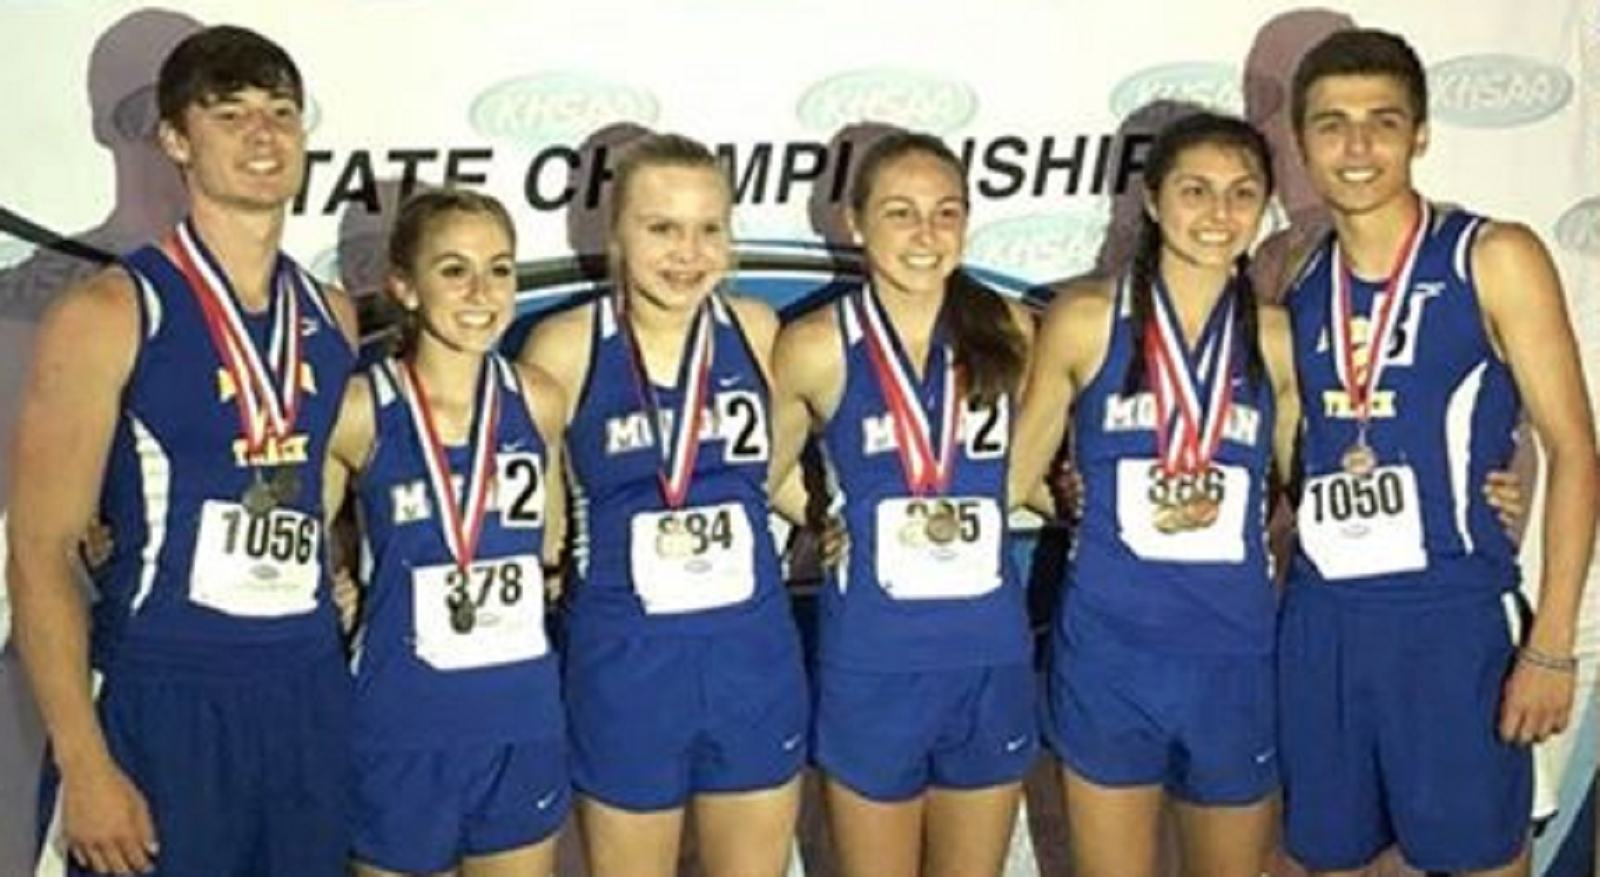 Students who medaled at the State Track & Field Tournament